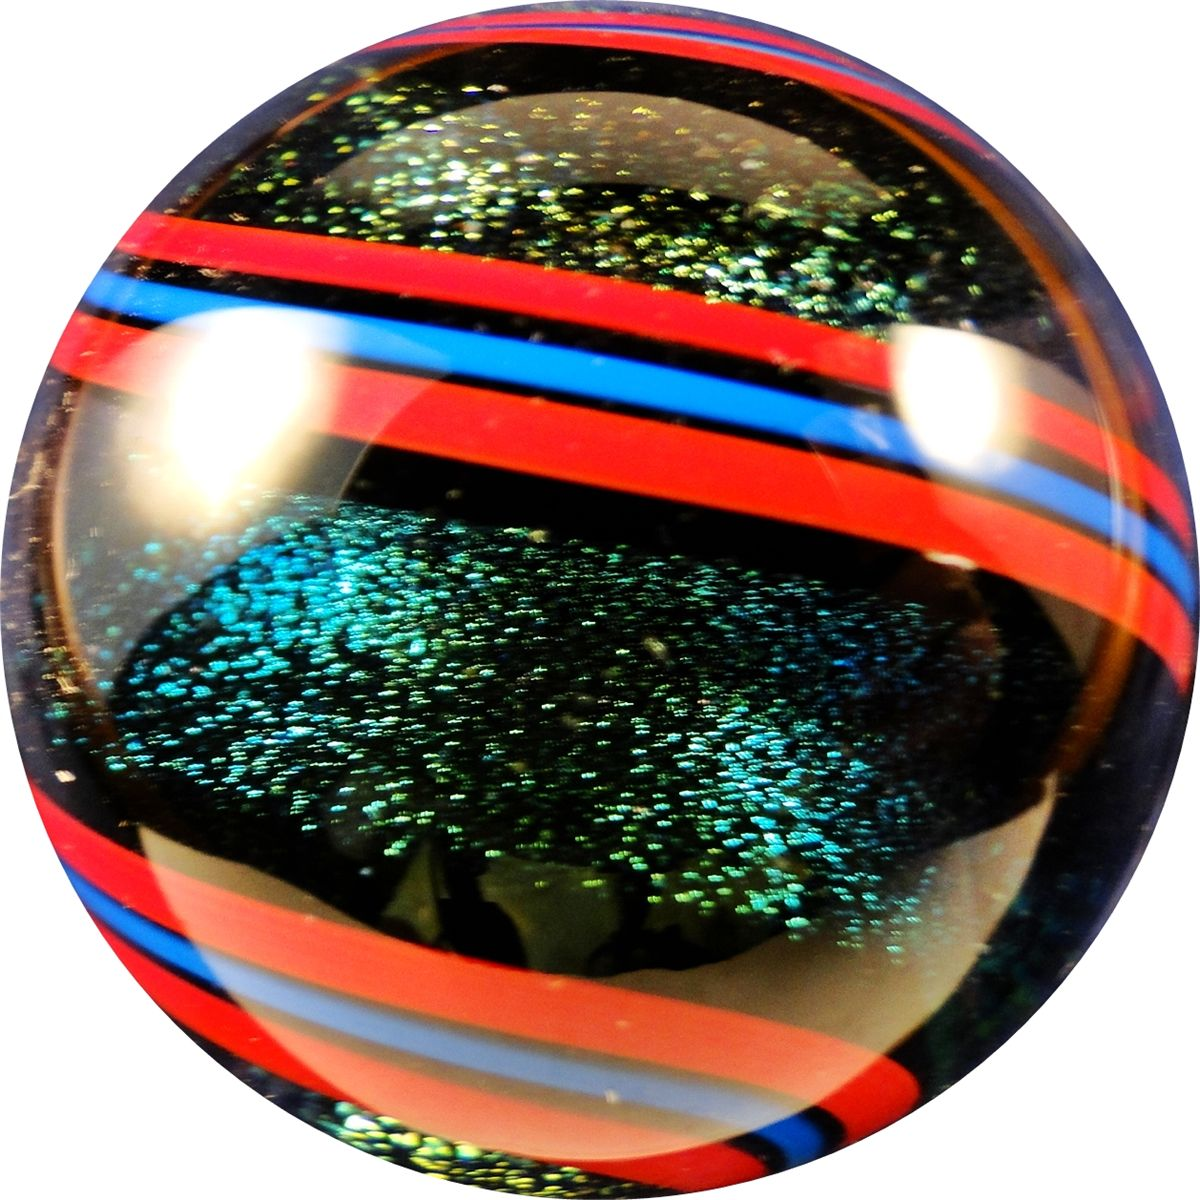 Amazing Marbles - Unique Toy Glass Marbles collection on eBay! |Most Desirable Marbles Glass